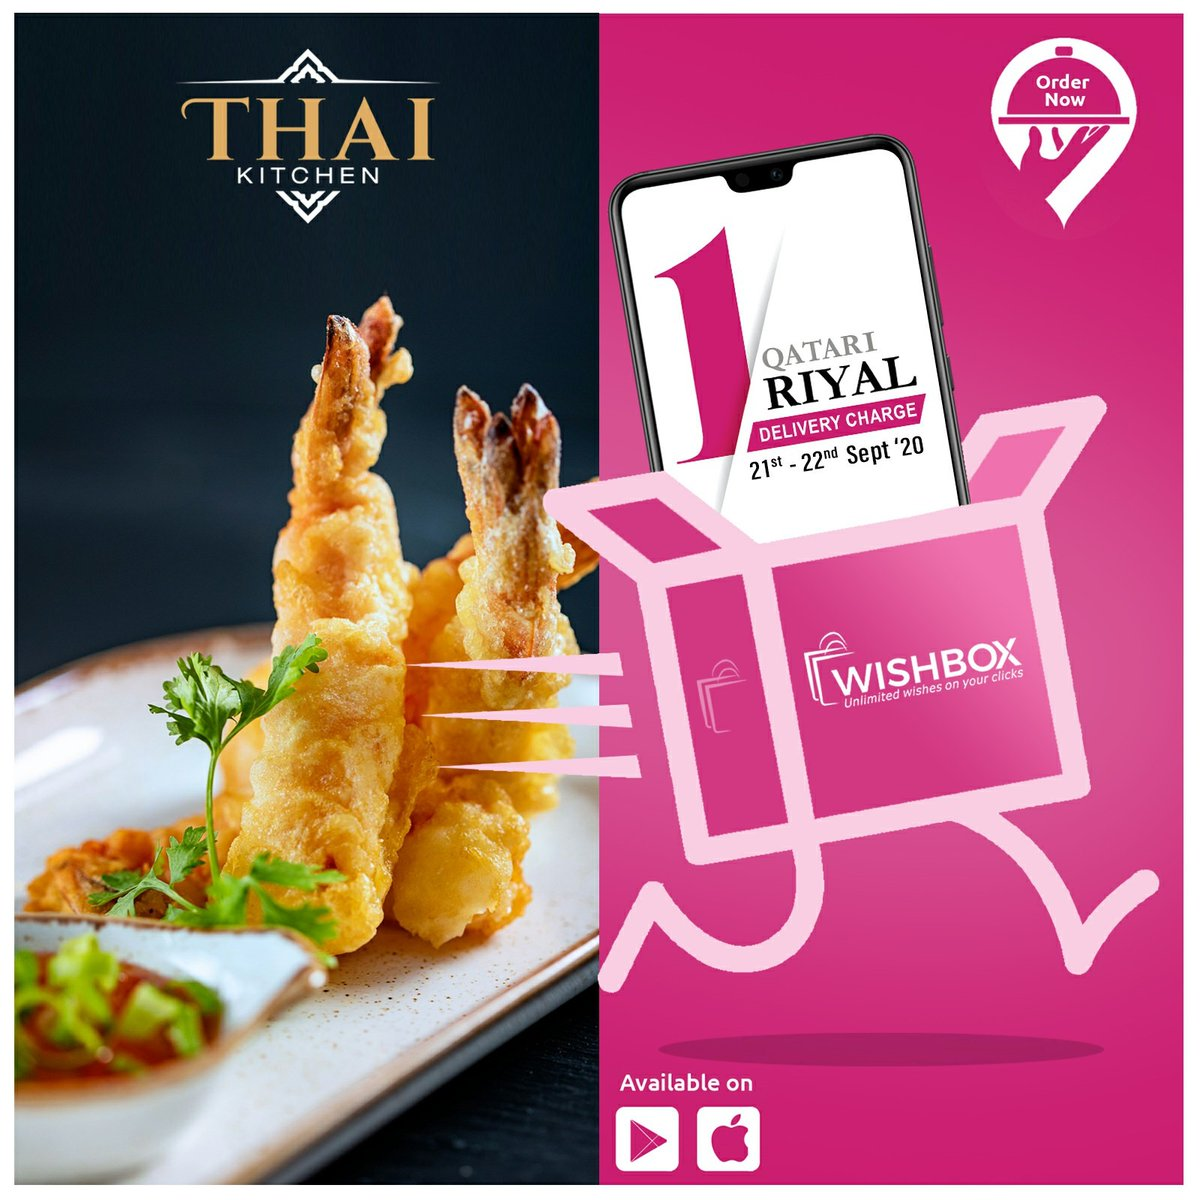 Serving its best-loved Thai dishes through @wishboxqa delivered to your doorstep. Only QR1 delivery charge on 21 & 22 September 2020. For menu and more details, please call 40095530 or WhatsApp 30015360  #thaikitchenbycentara #qatarrestaurants #dohafoodie #thaikitchen #thaifood https://t.co/Q2KnTbHV03